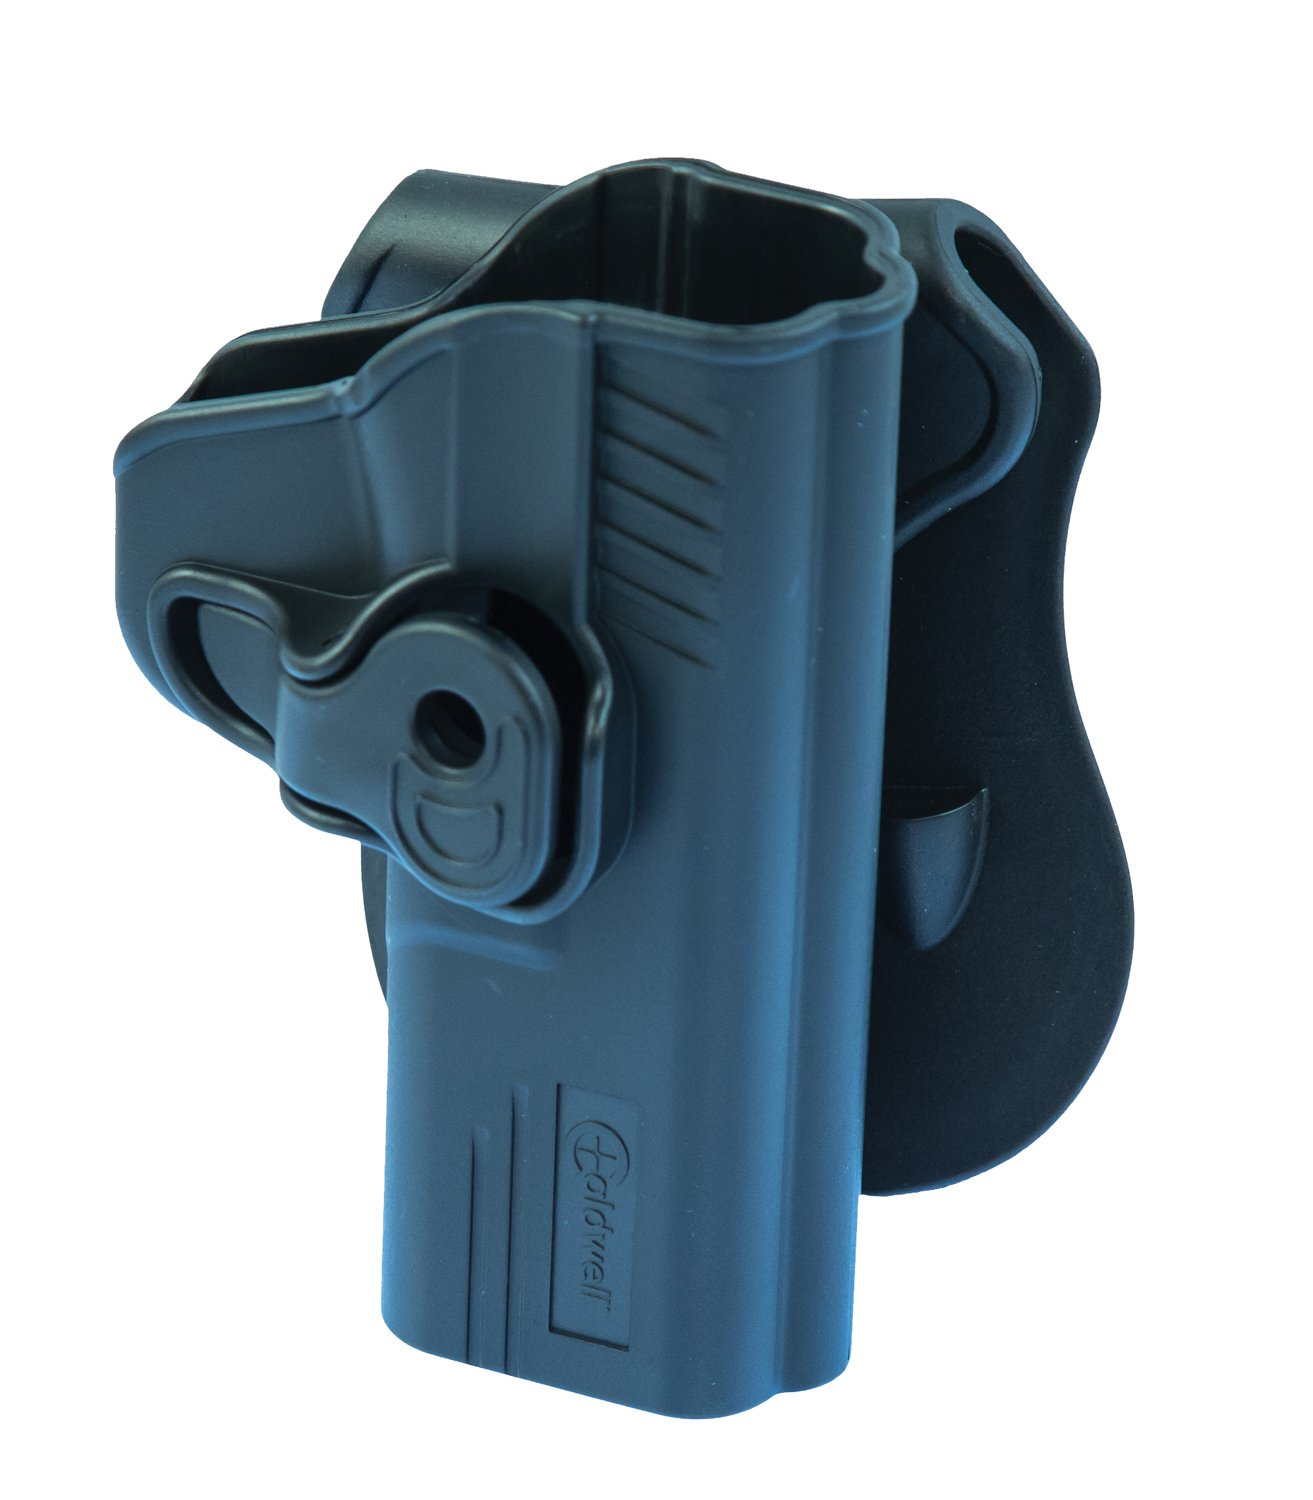 Caldwell Tac Ops S&W M&P 9mm Molded Retention Holster, Black